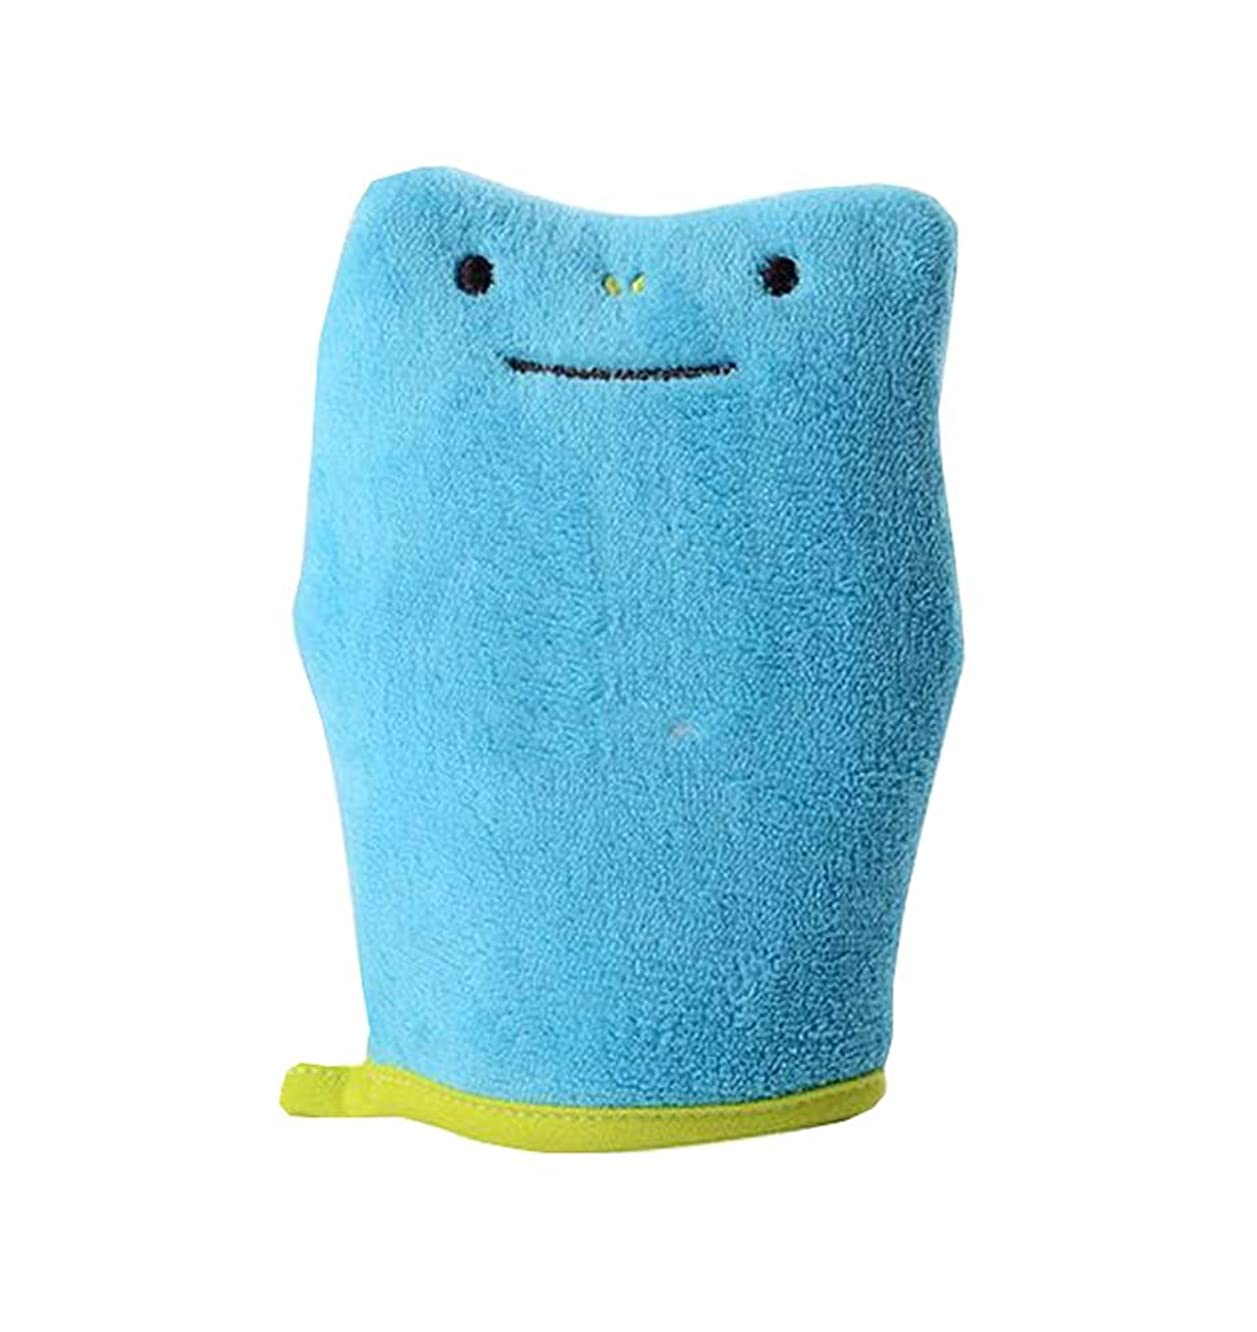 Bath Brush Sponge Bath Towel Products Children Bath Sponges, Blue